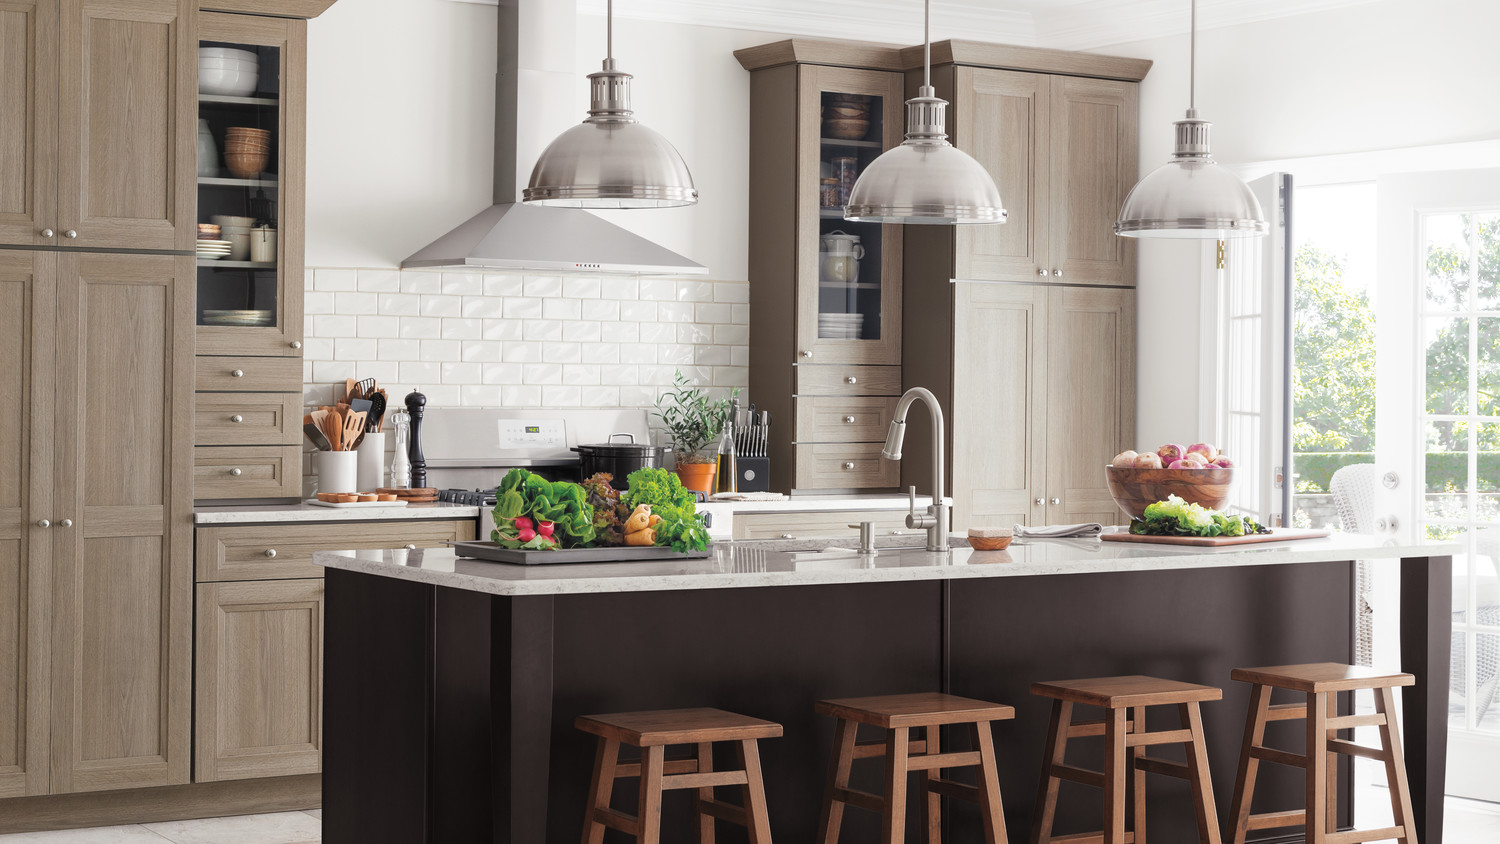 Video martha stewart shares her kitchen design for Sample small kitchen designs